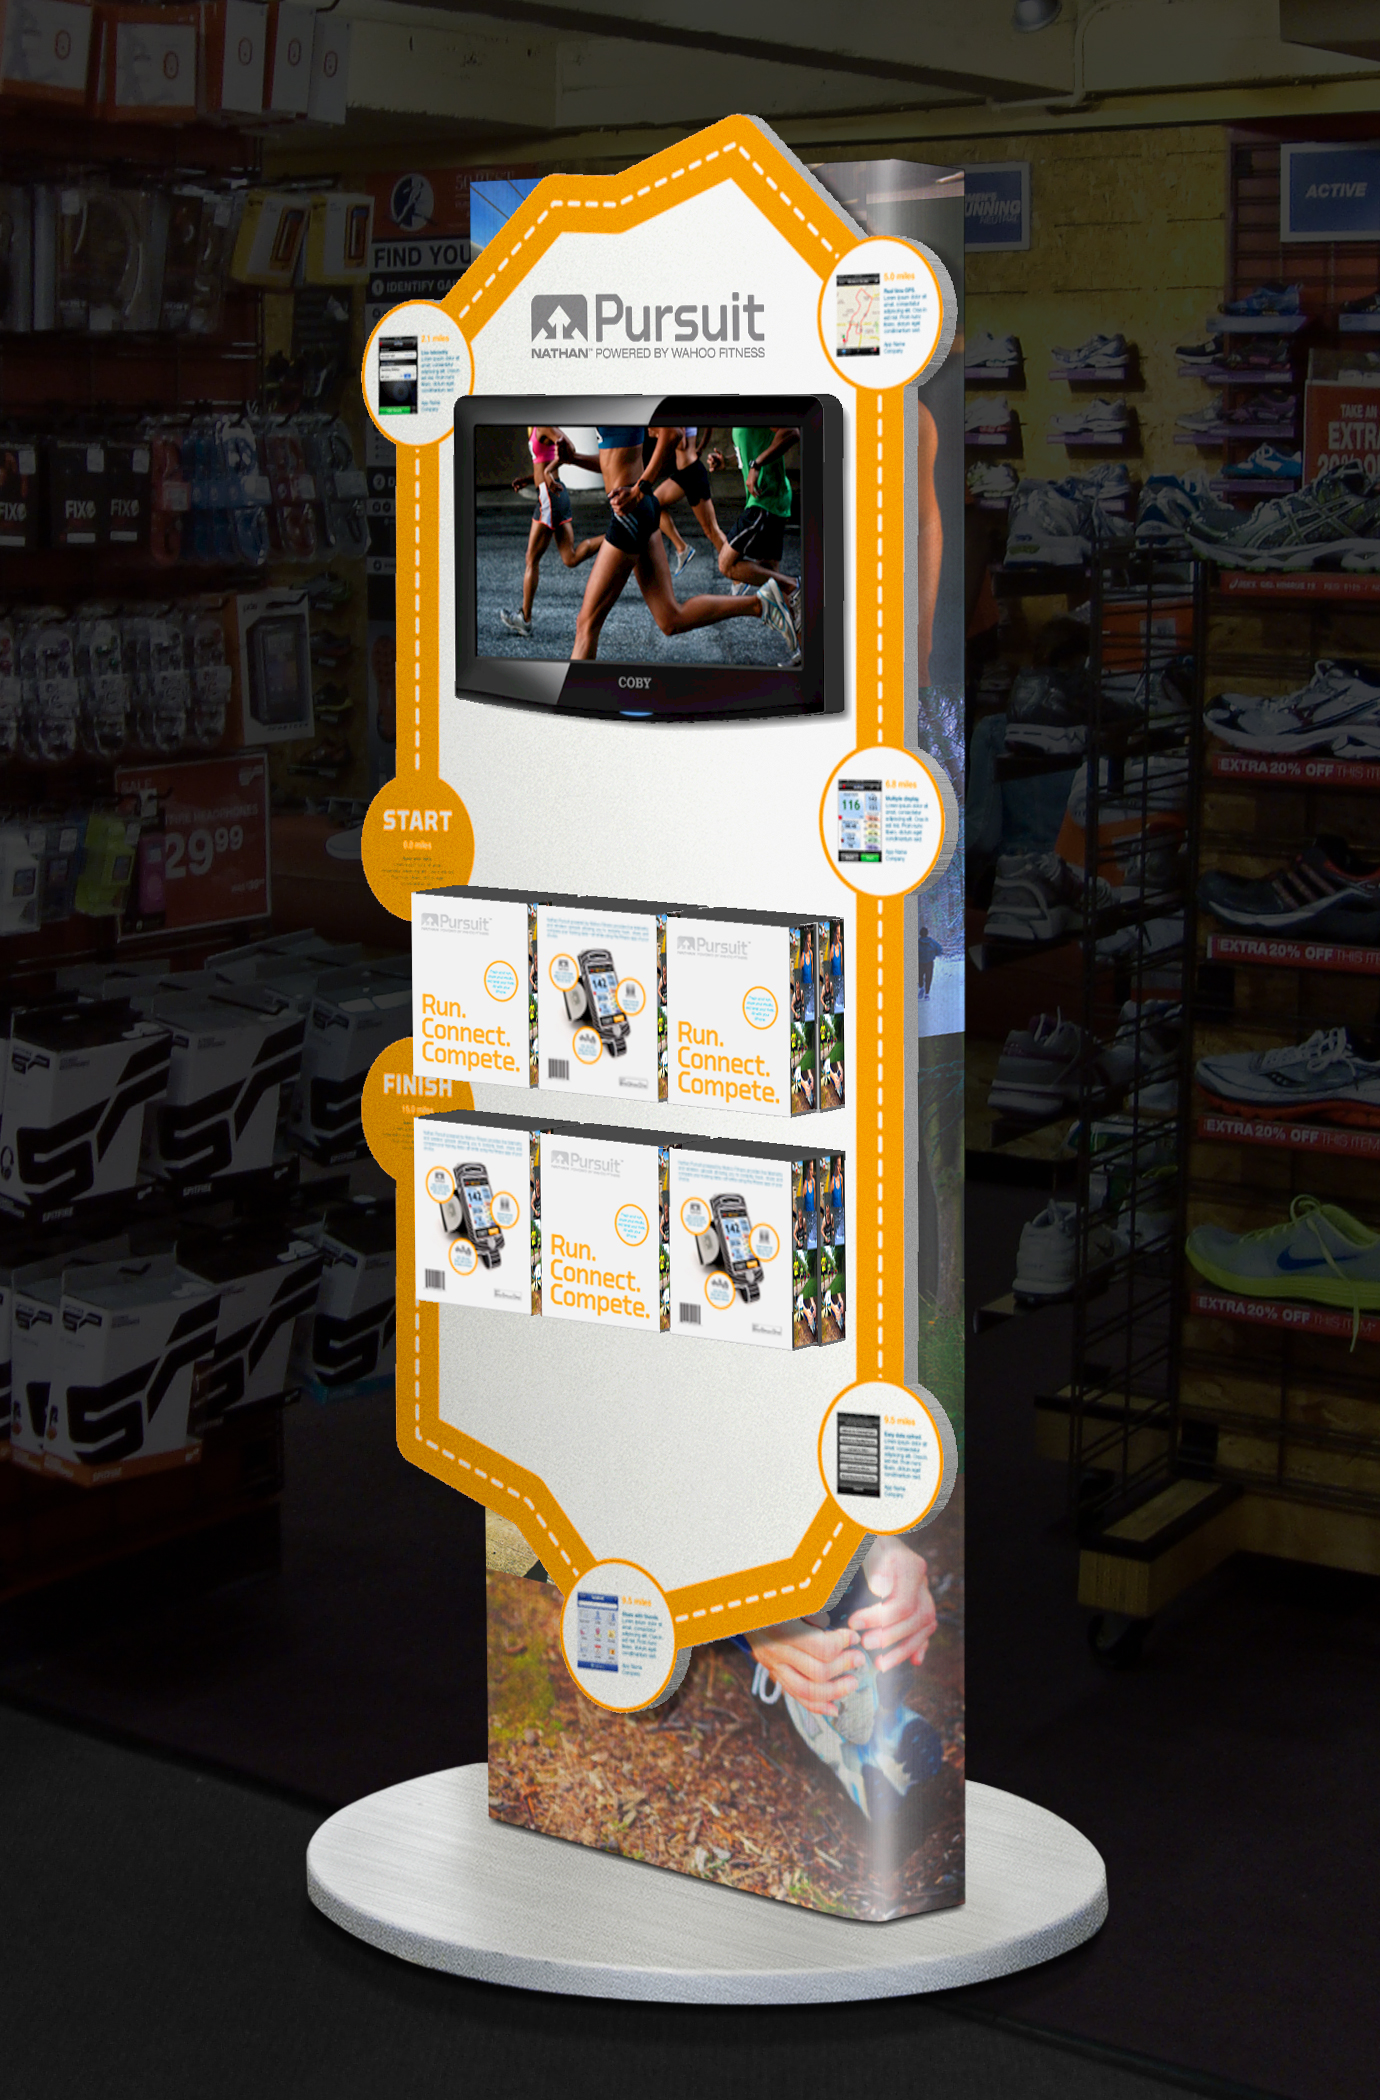 Nathan Sports Pursuit app point-of-sale promotional display.